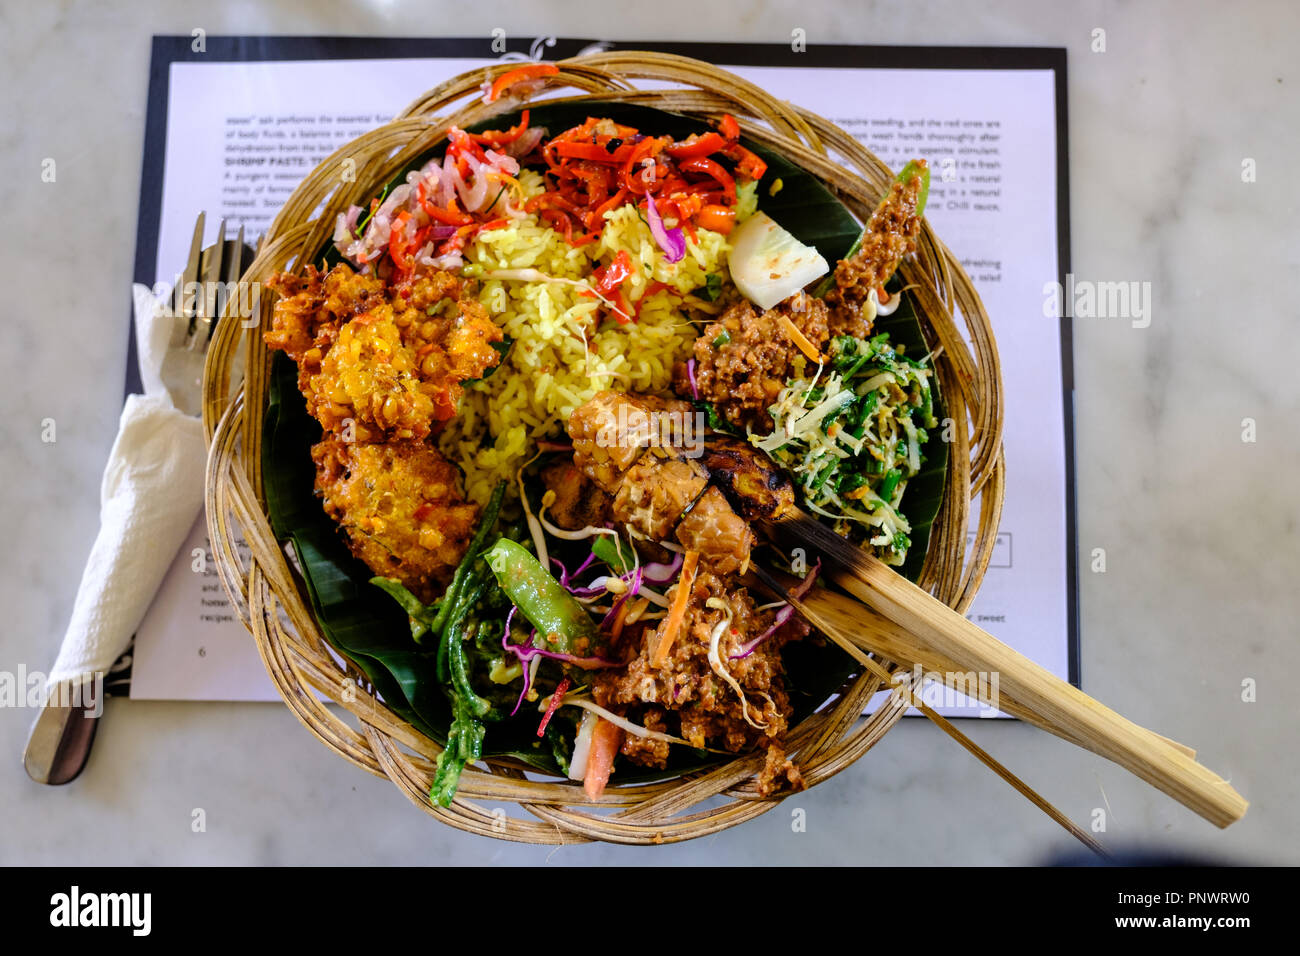 A Bowl Of Traditional Balinese Food Stock Photo 219999724